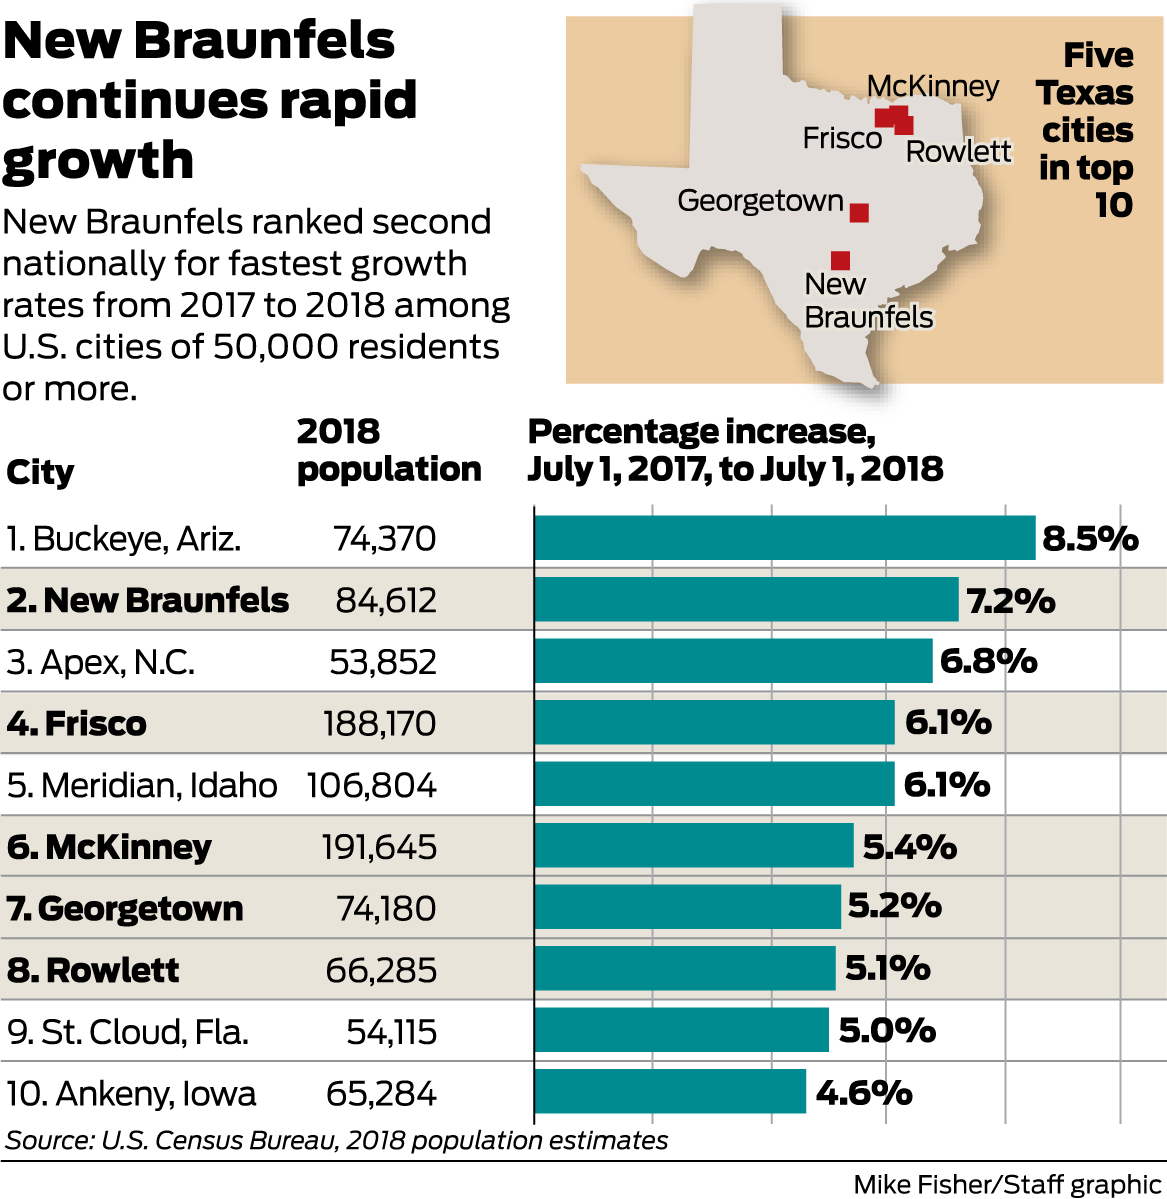 New Braunfels, San Antonio sustain their population surges